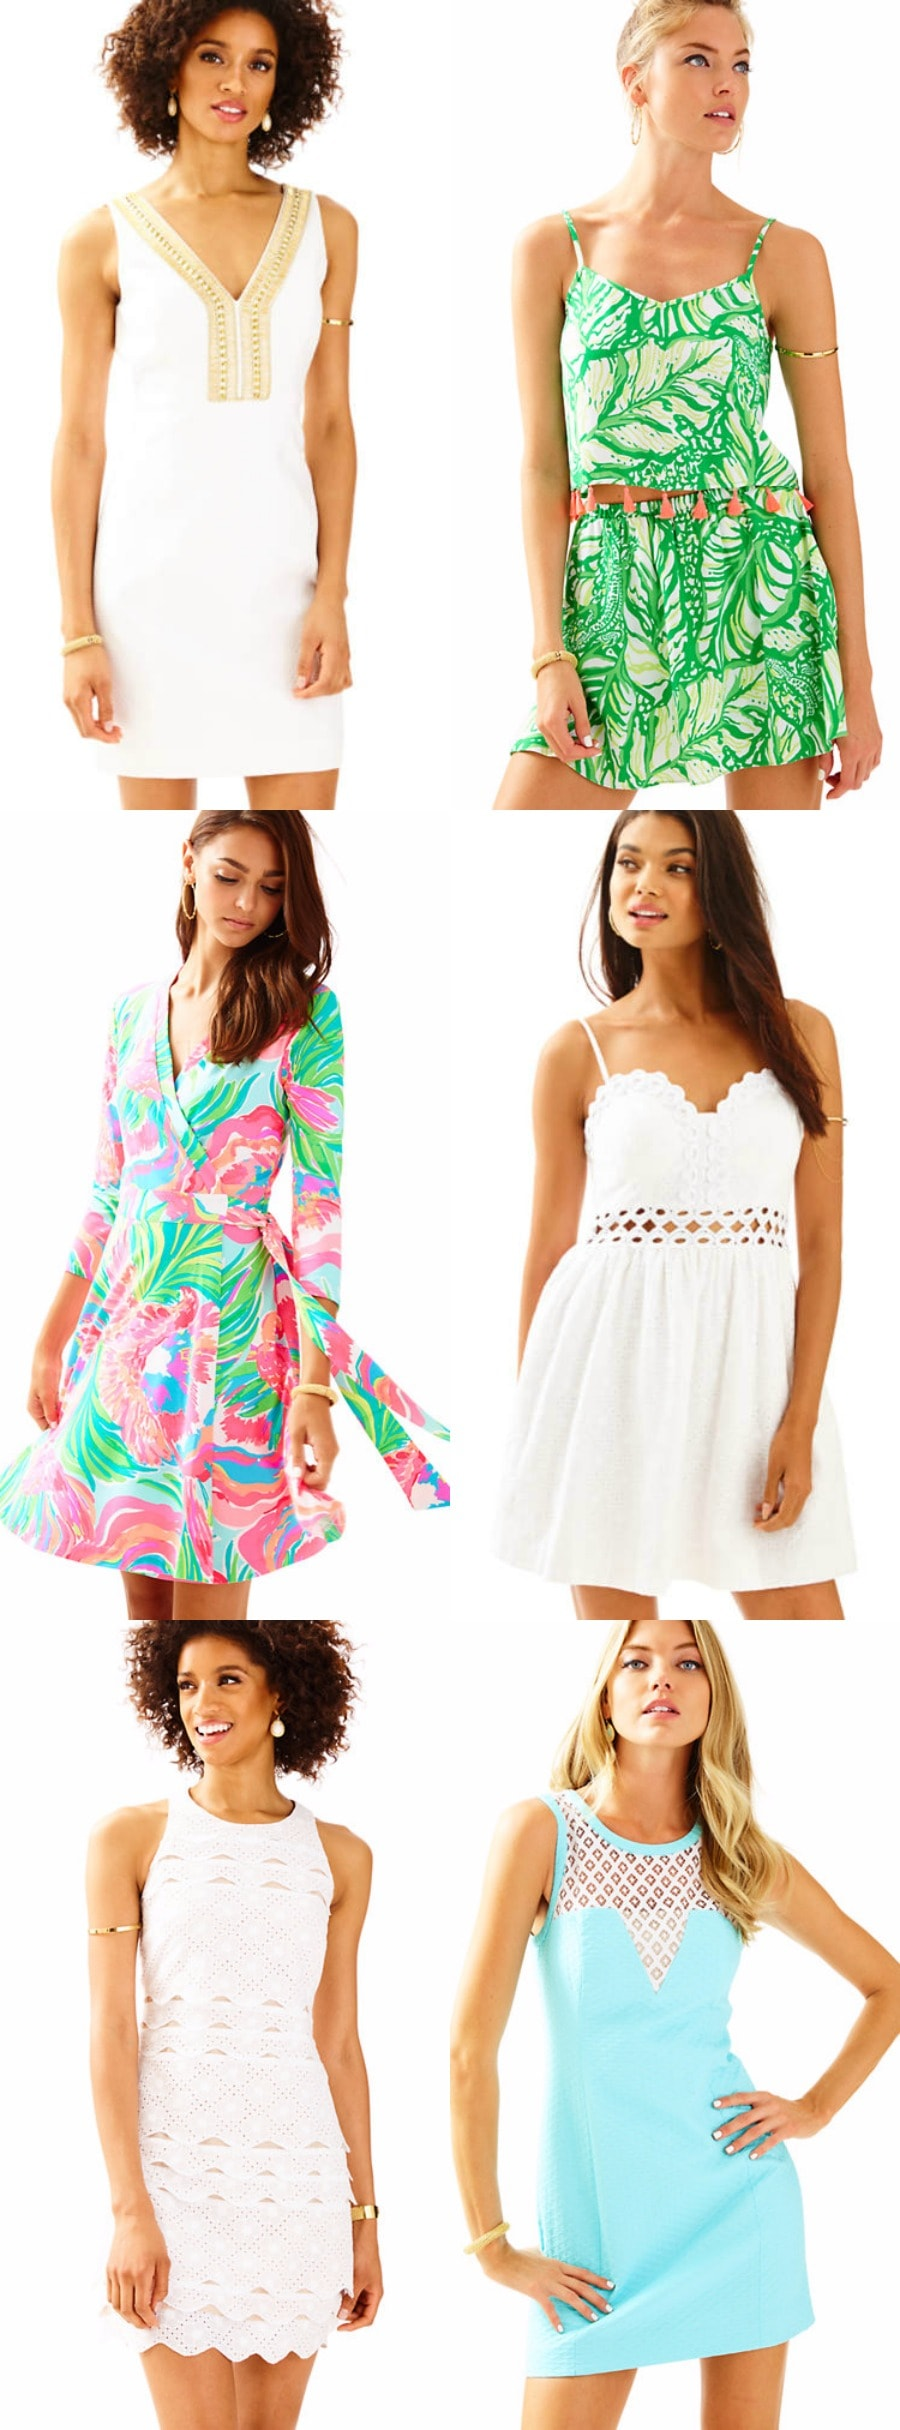 The cutest new arrivals from the Lilly Pulitzer spring collection including @lillypulitzer trademark colorful dresses from